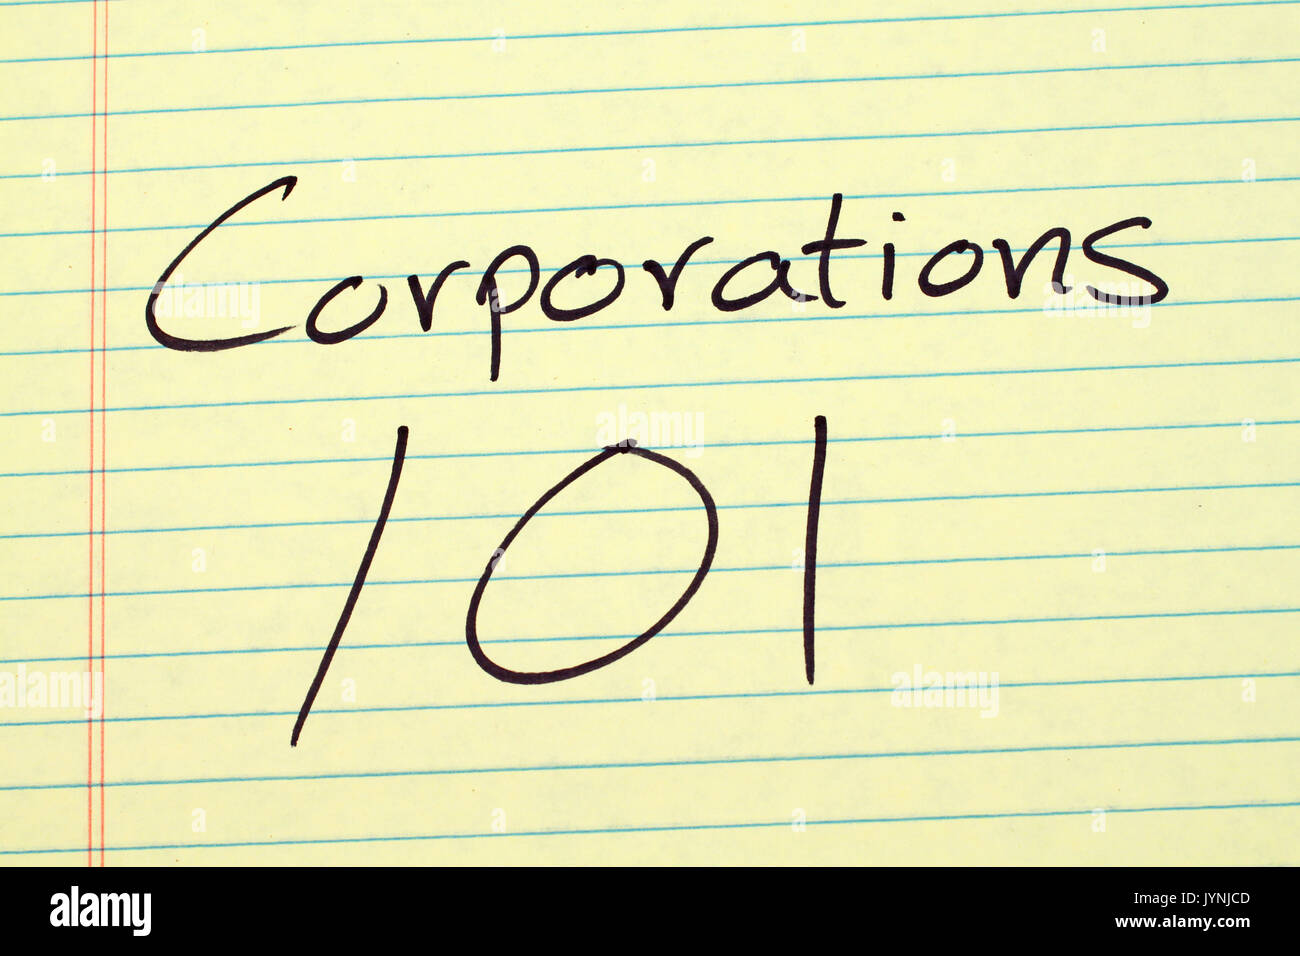 The words 'Corporations 101' on a yellow legal pad - Stock Image